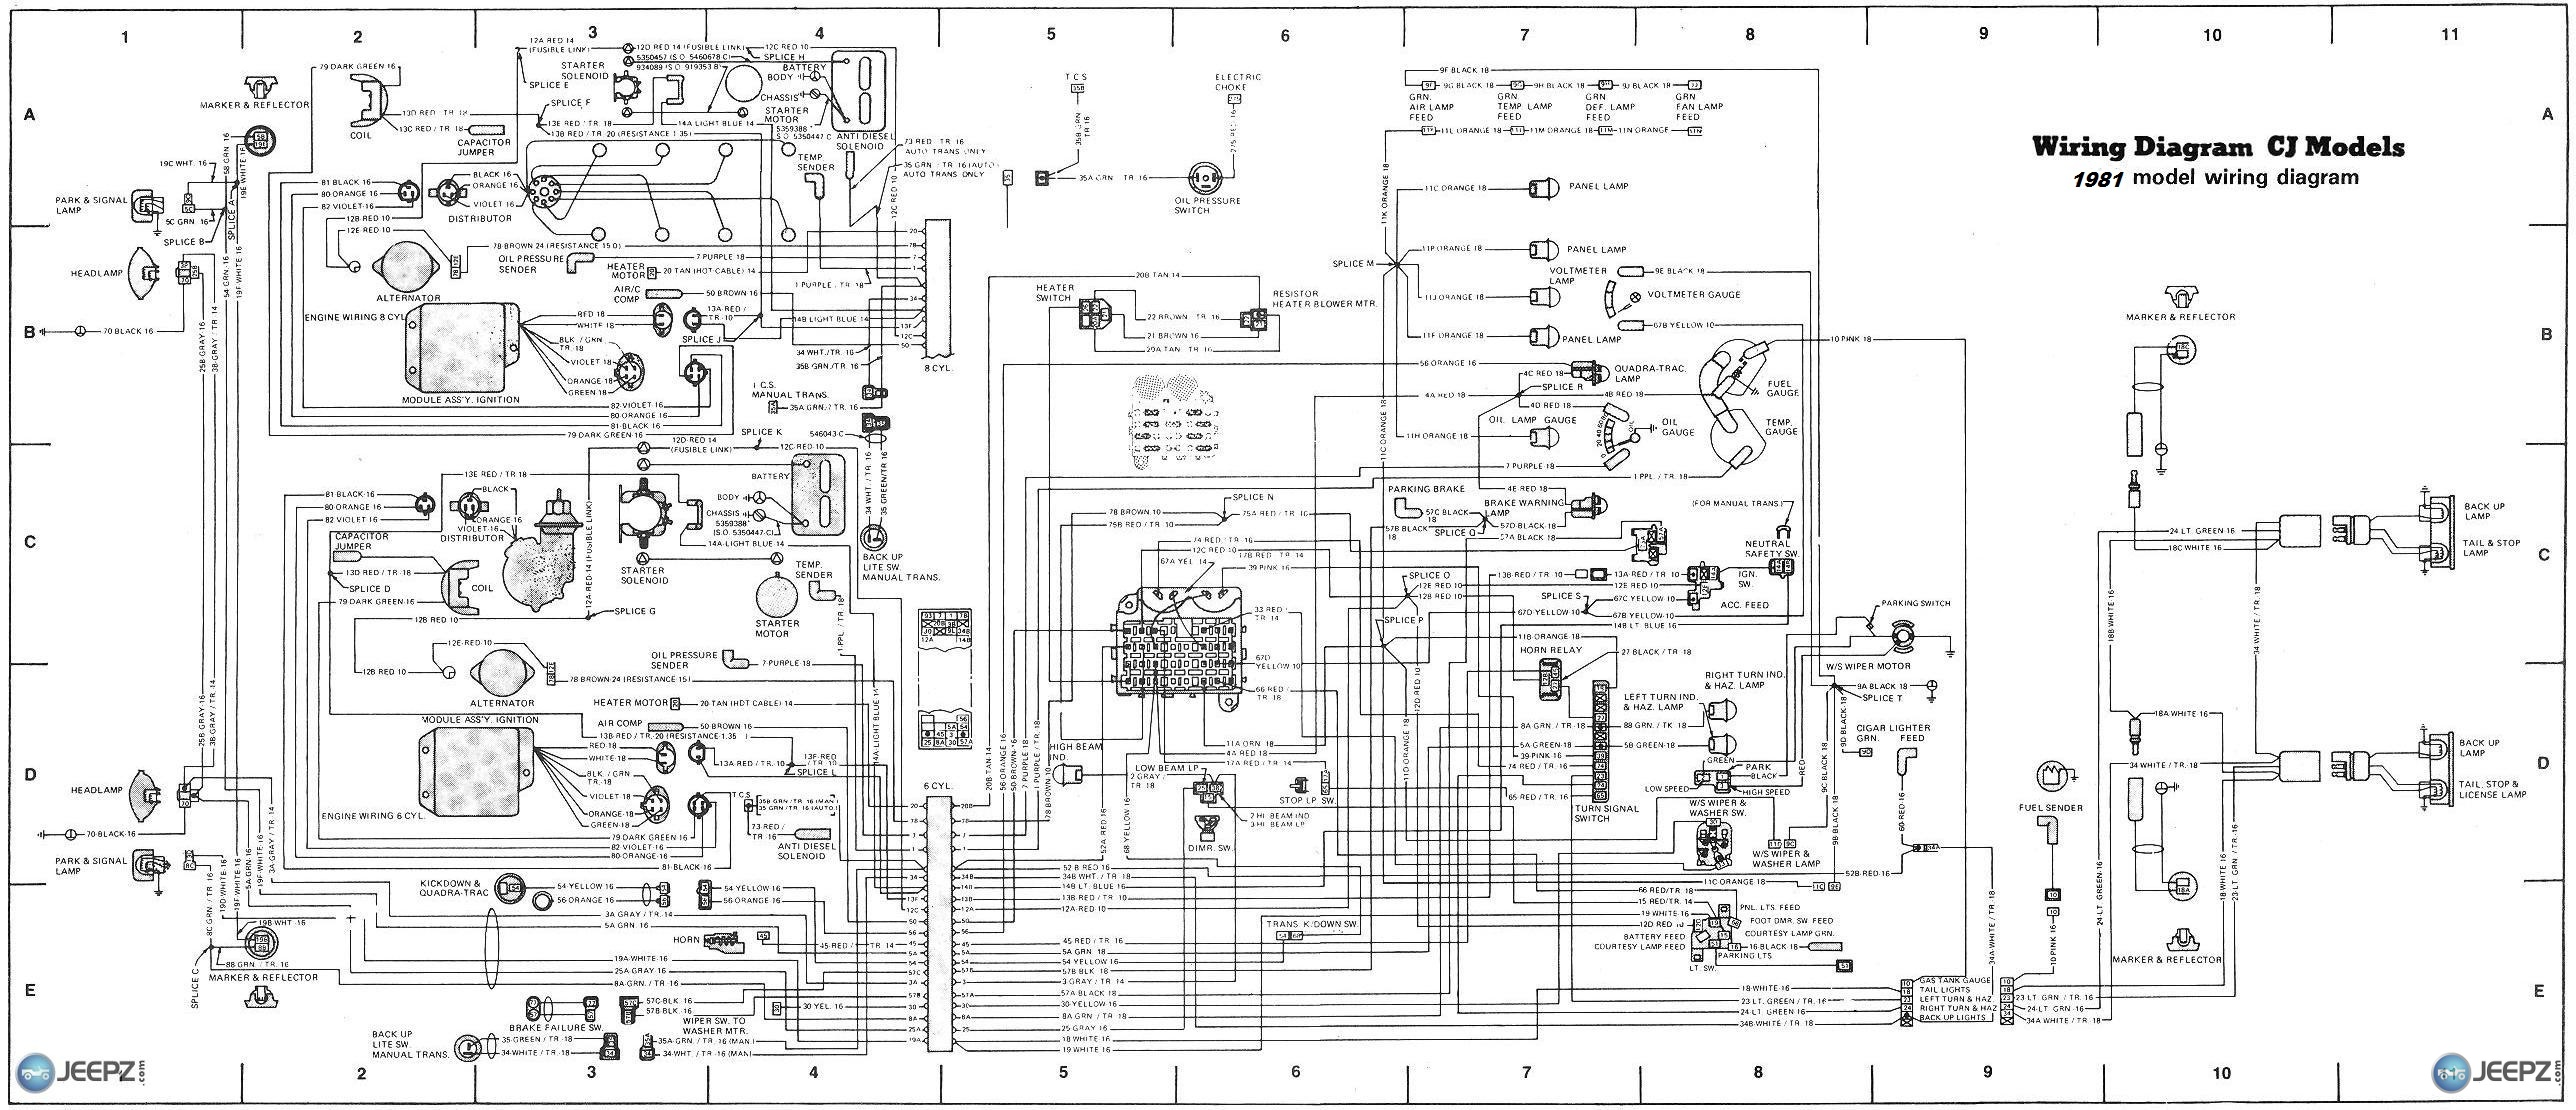 Jeep Cj7 Wiring Diagram - Wiring Diagram All drink-core -  drink-core.huevoprint.it | 1980 Cj7 Wiring Diagram |  | Huevoprint